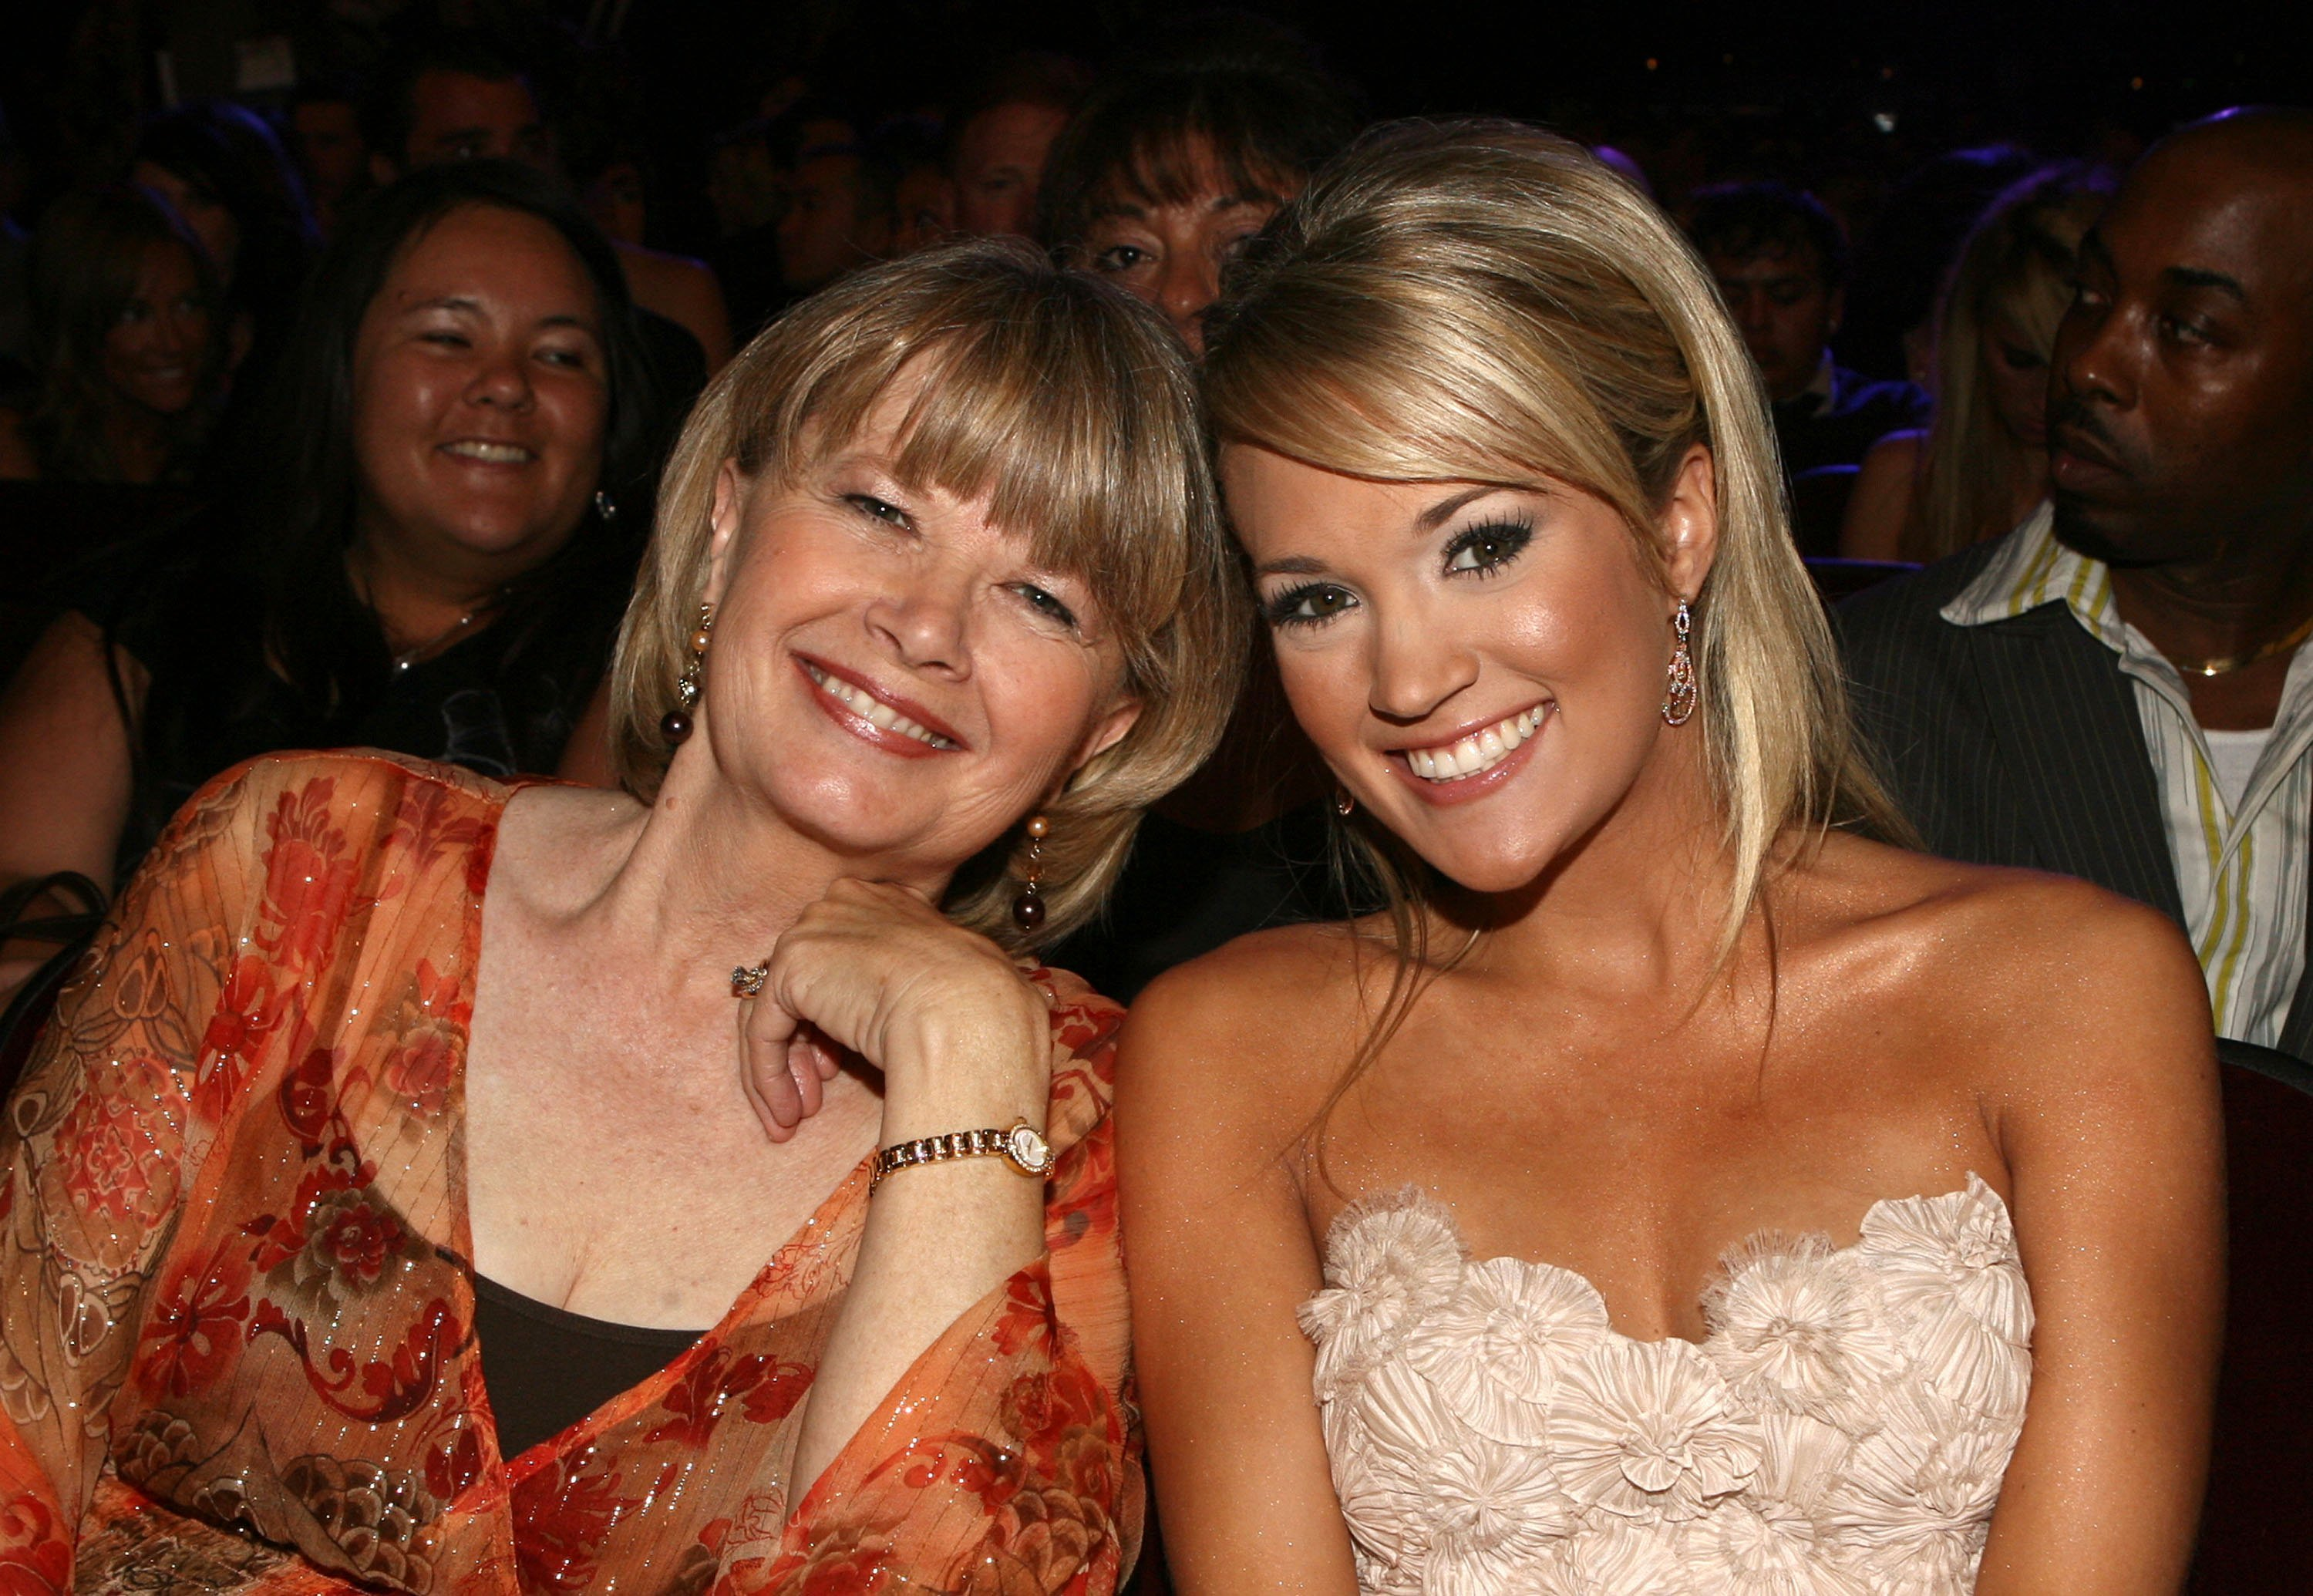 Carrie Underwood smiles with her mother at the 2006 American Music Awards in Los Angeles on 21 November, 2006. | Photo: Getty Images.